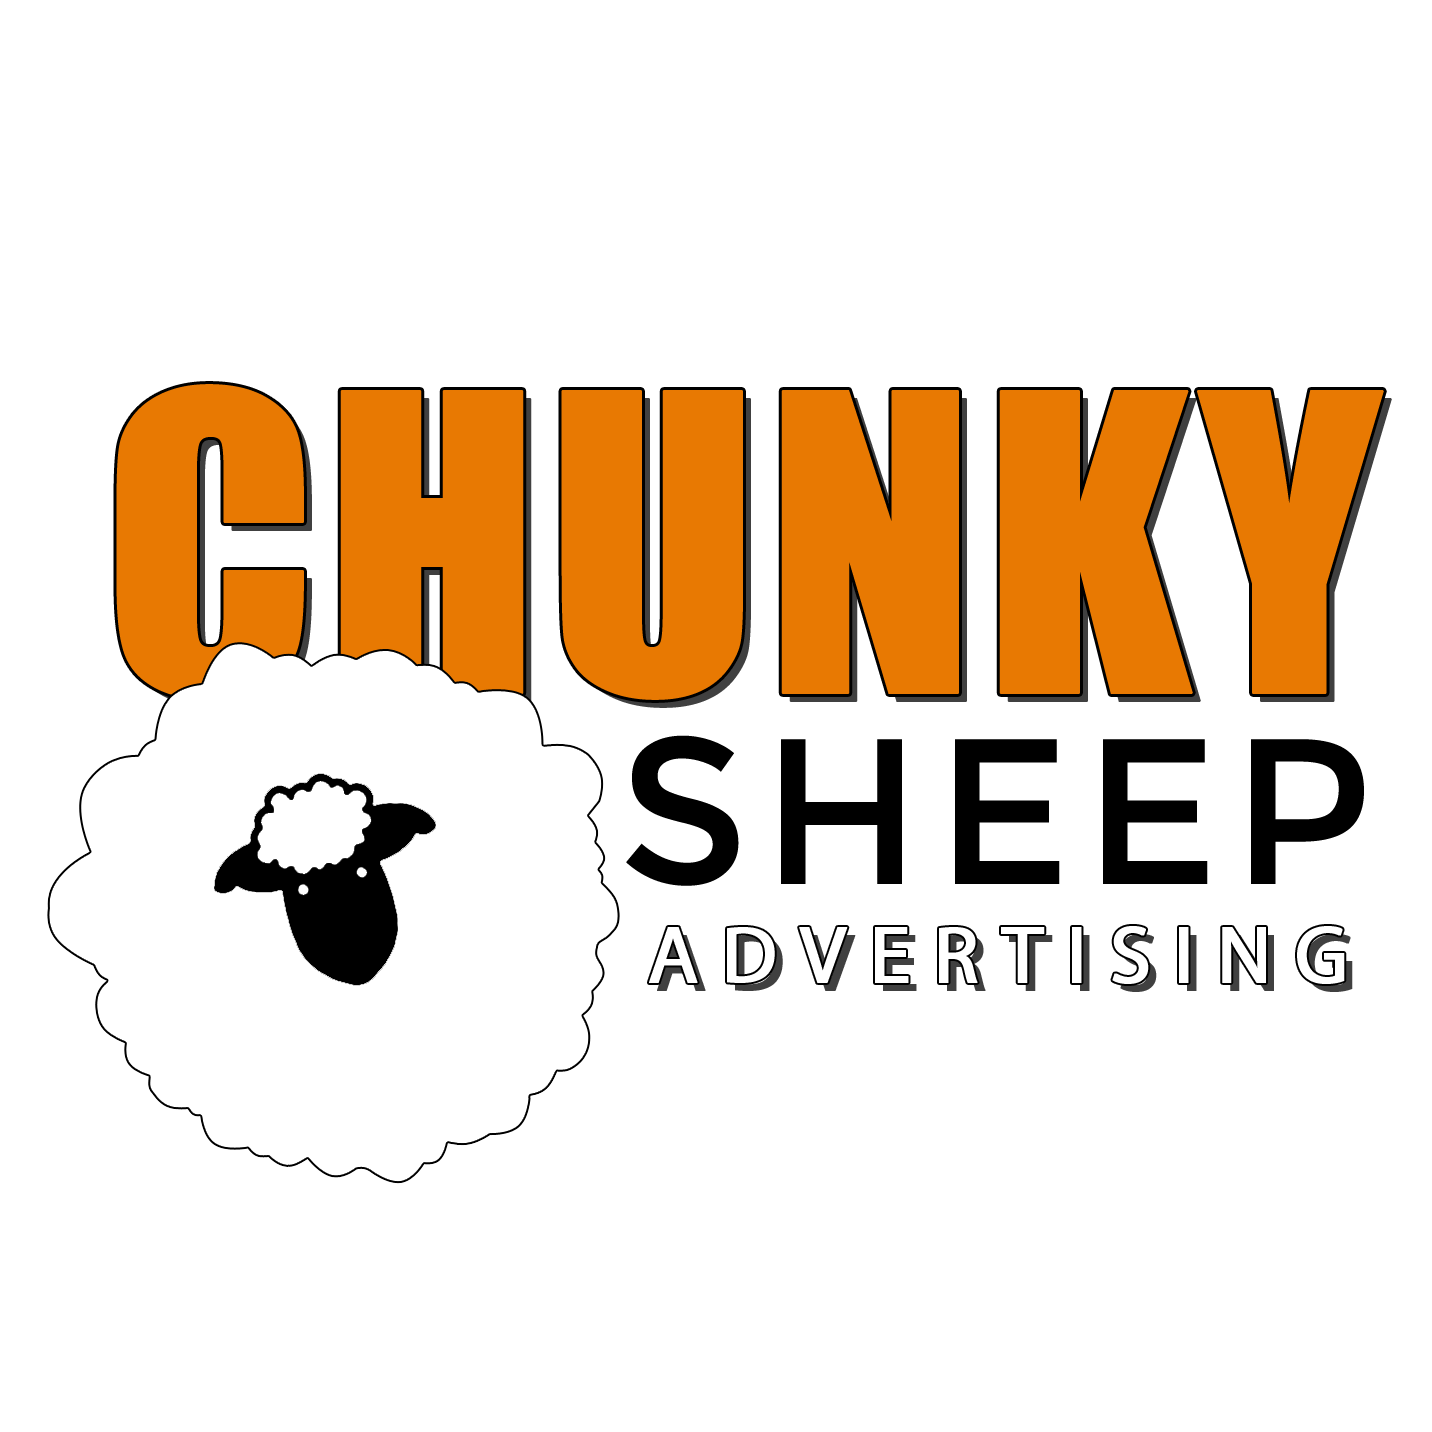 Chunky Sheep Advertising